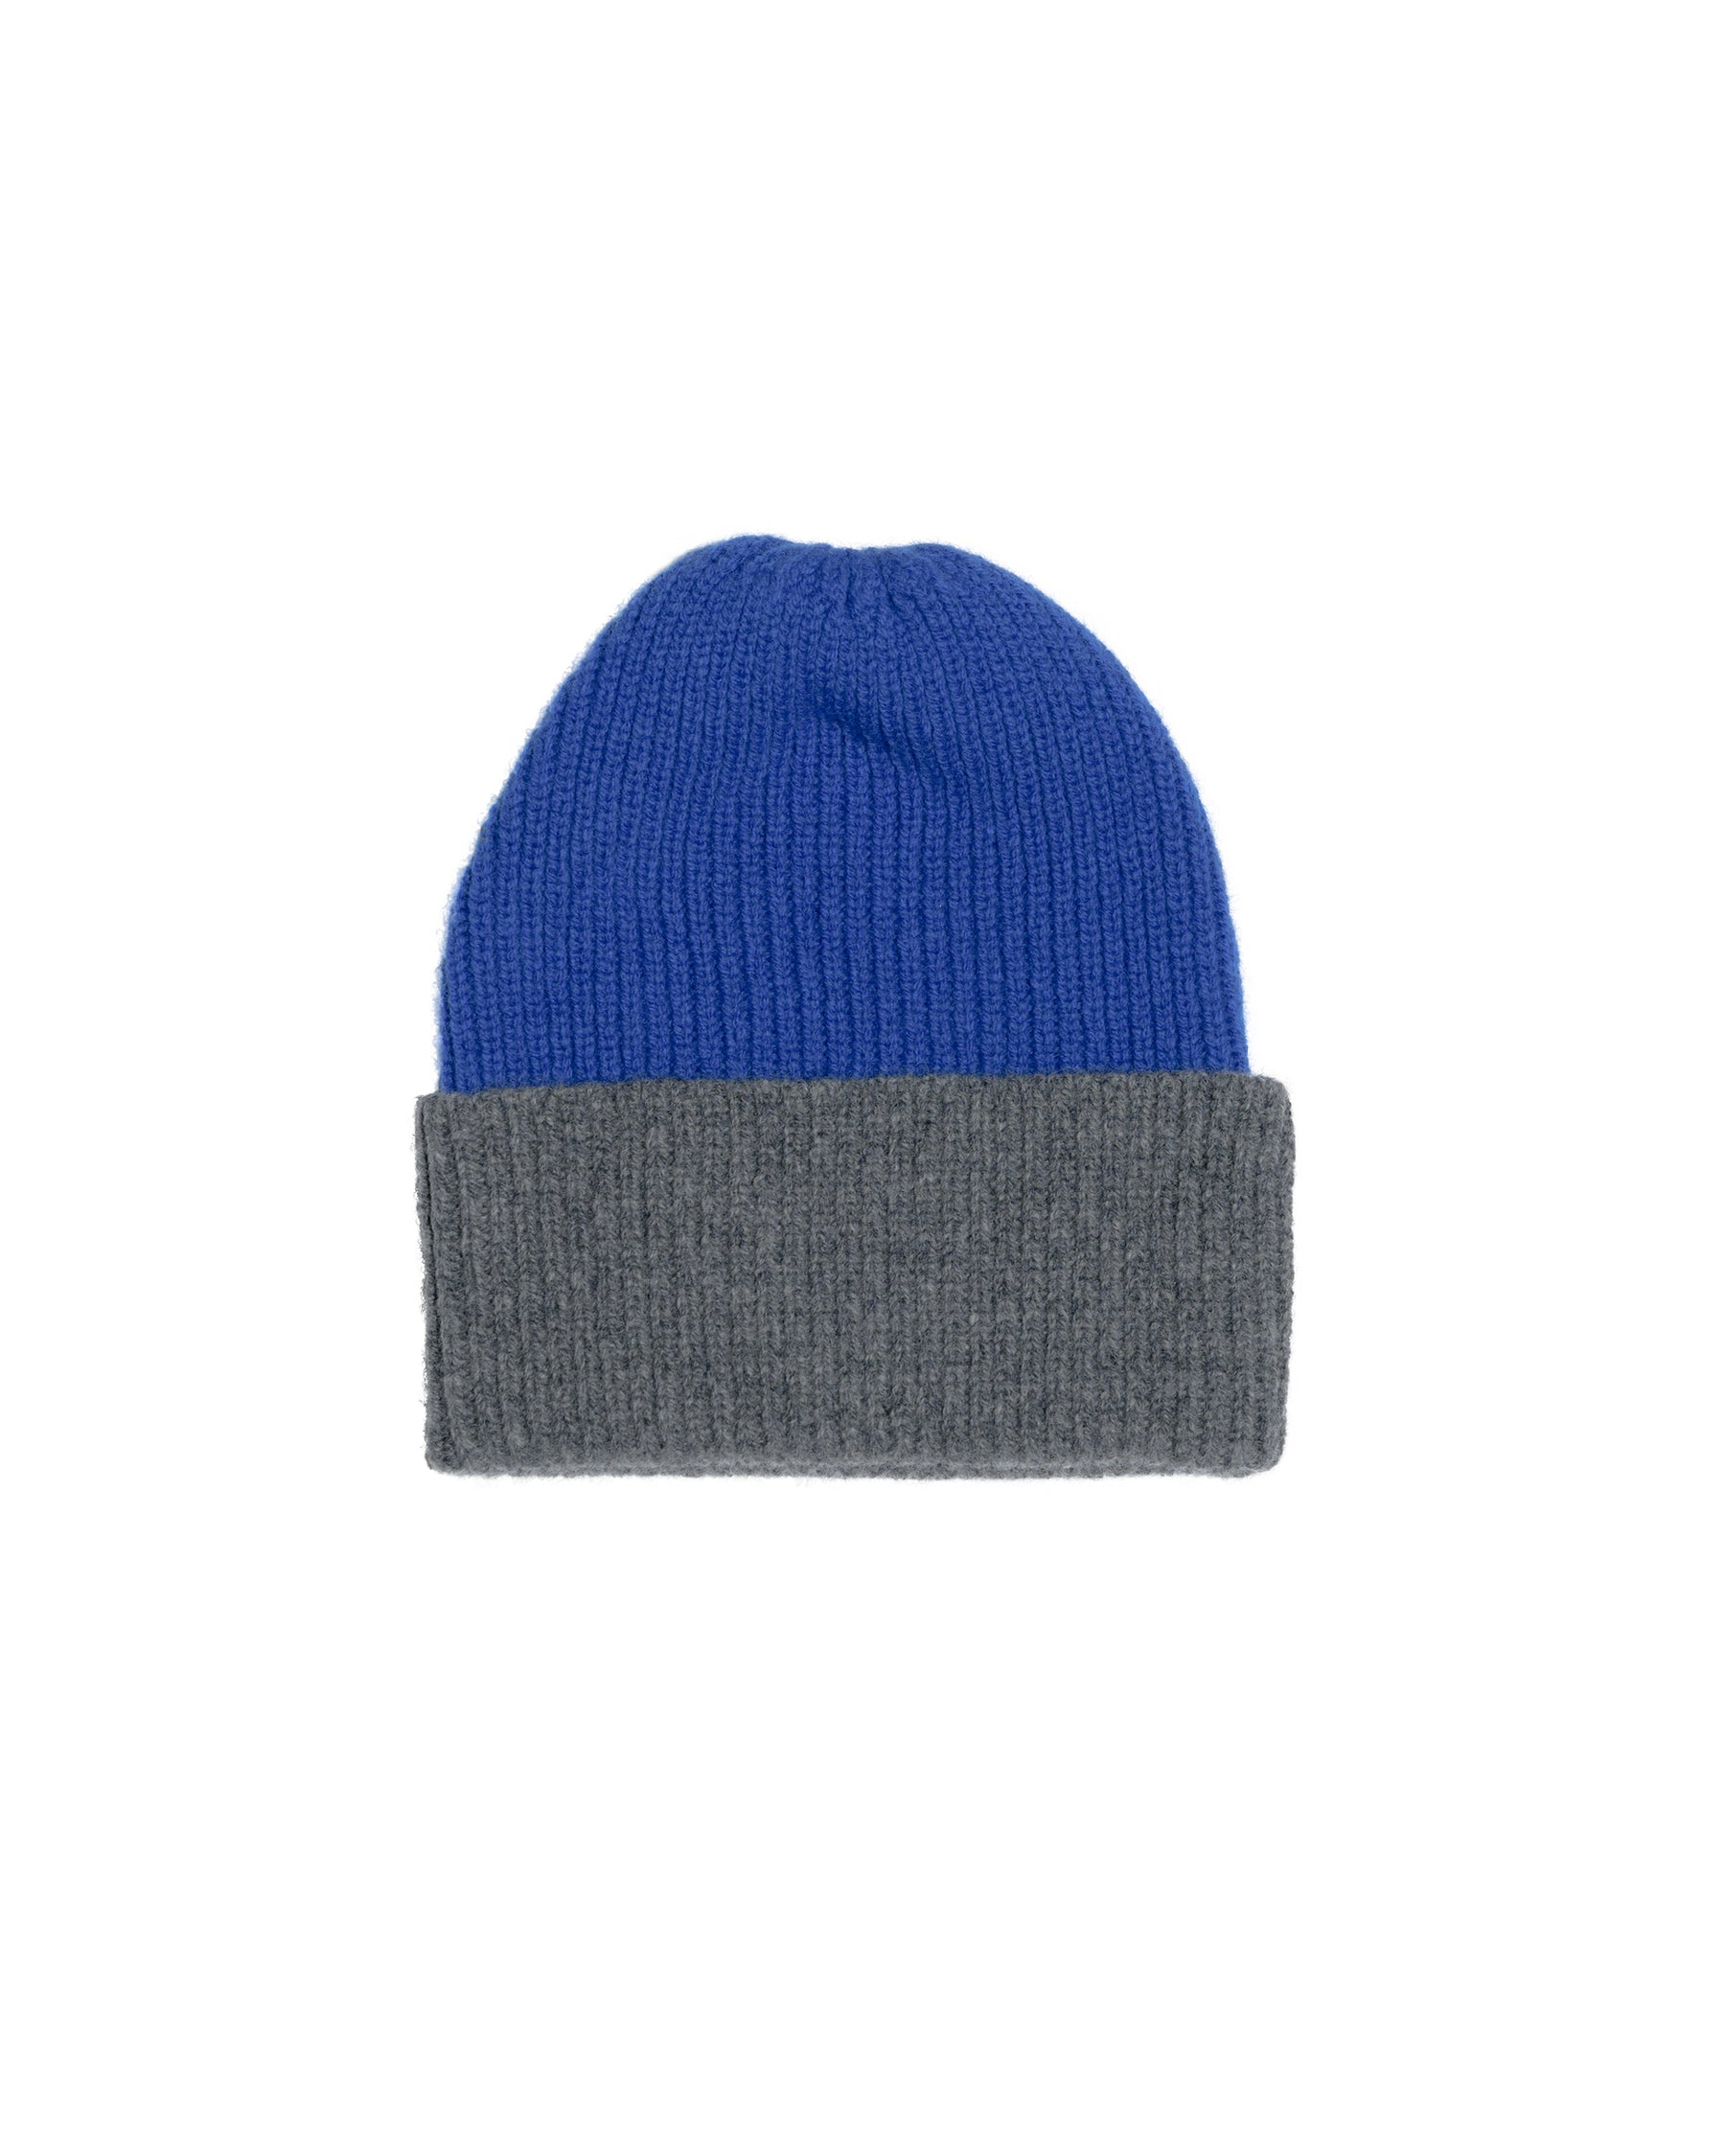 CONTRA LAMBSWOOL HAT • BLUE